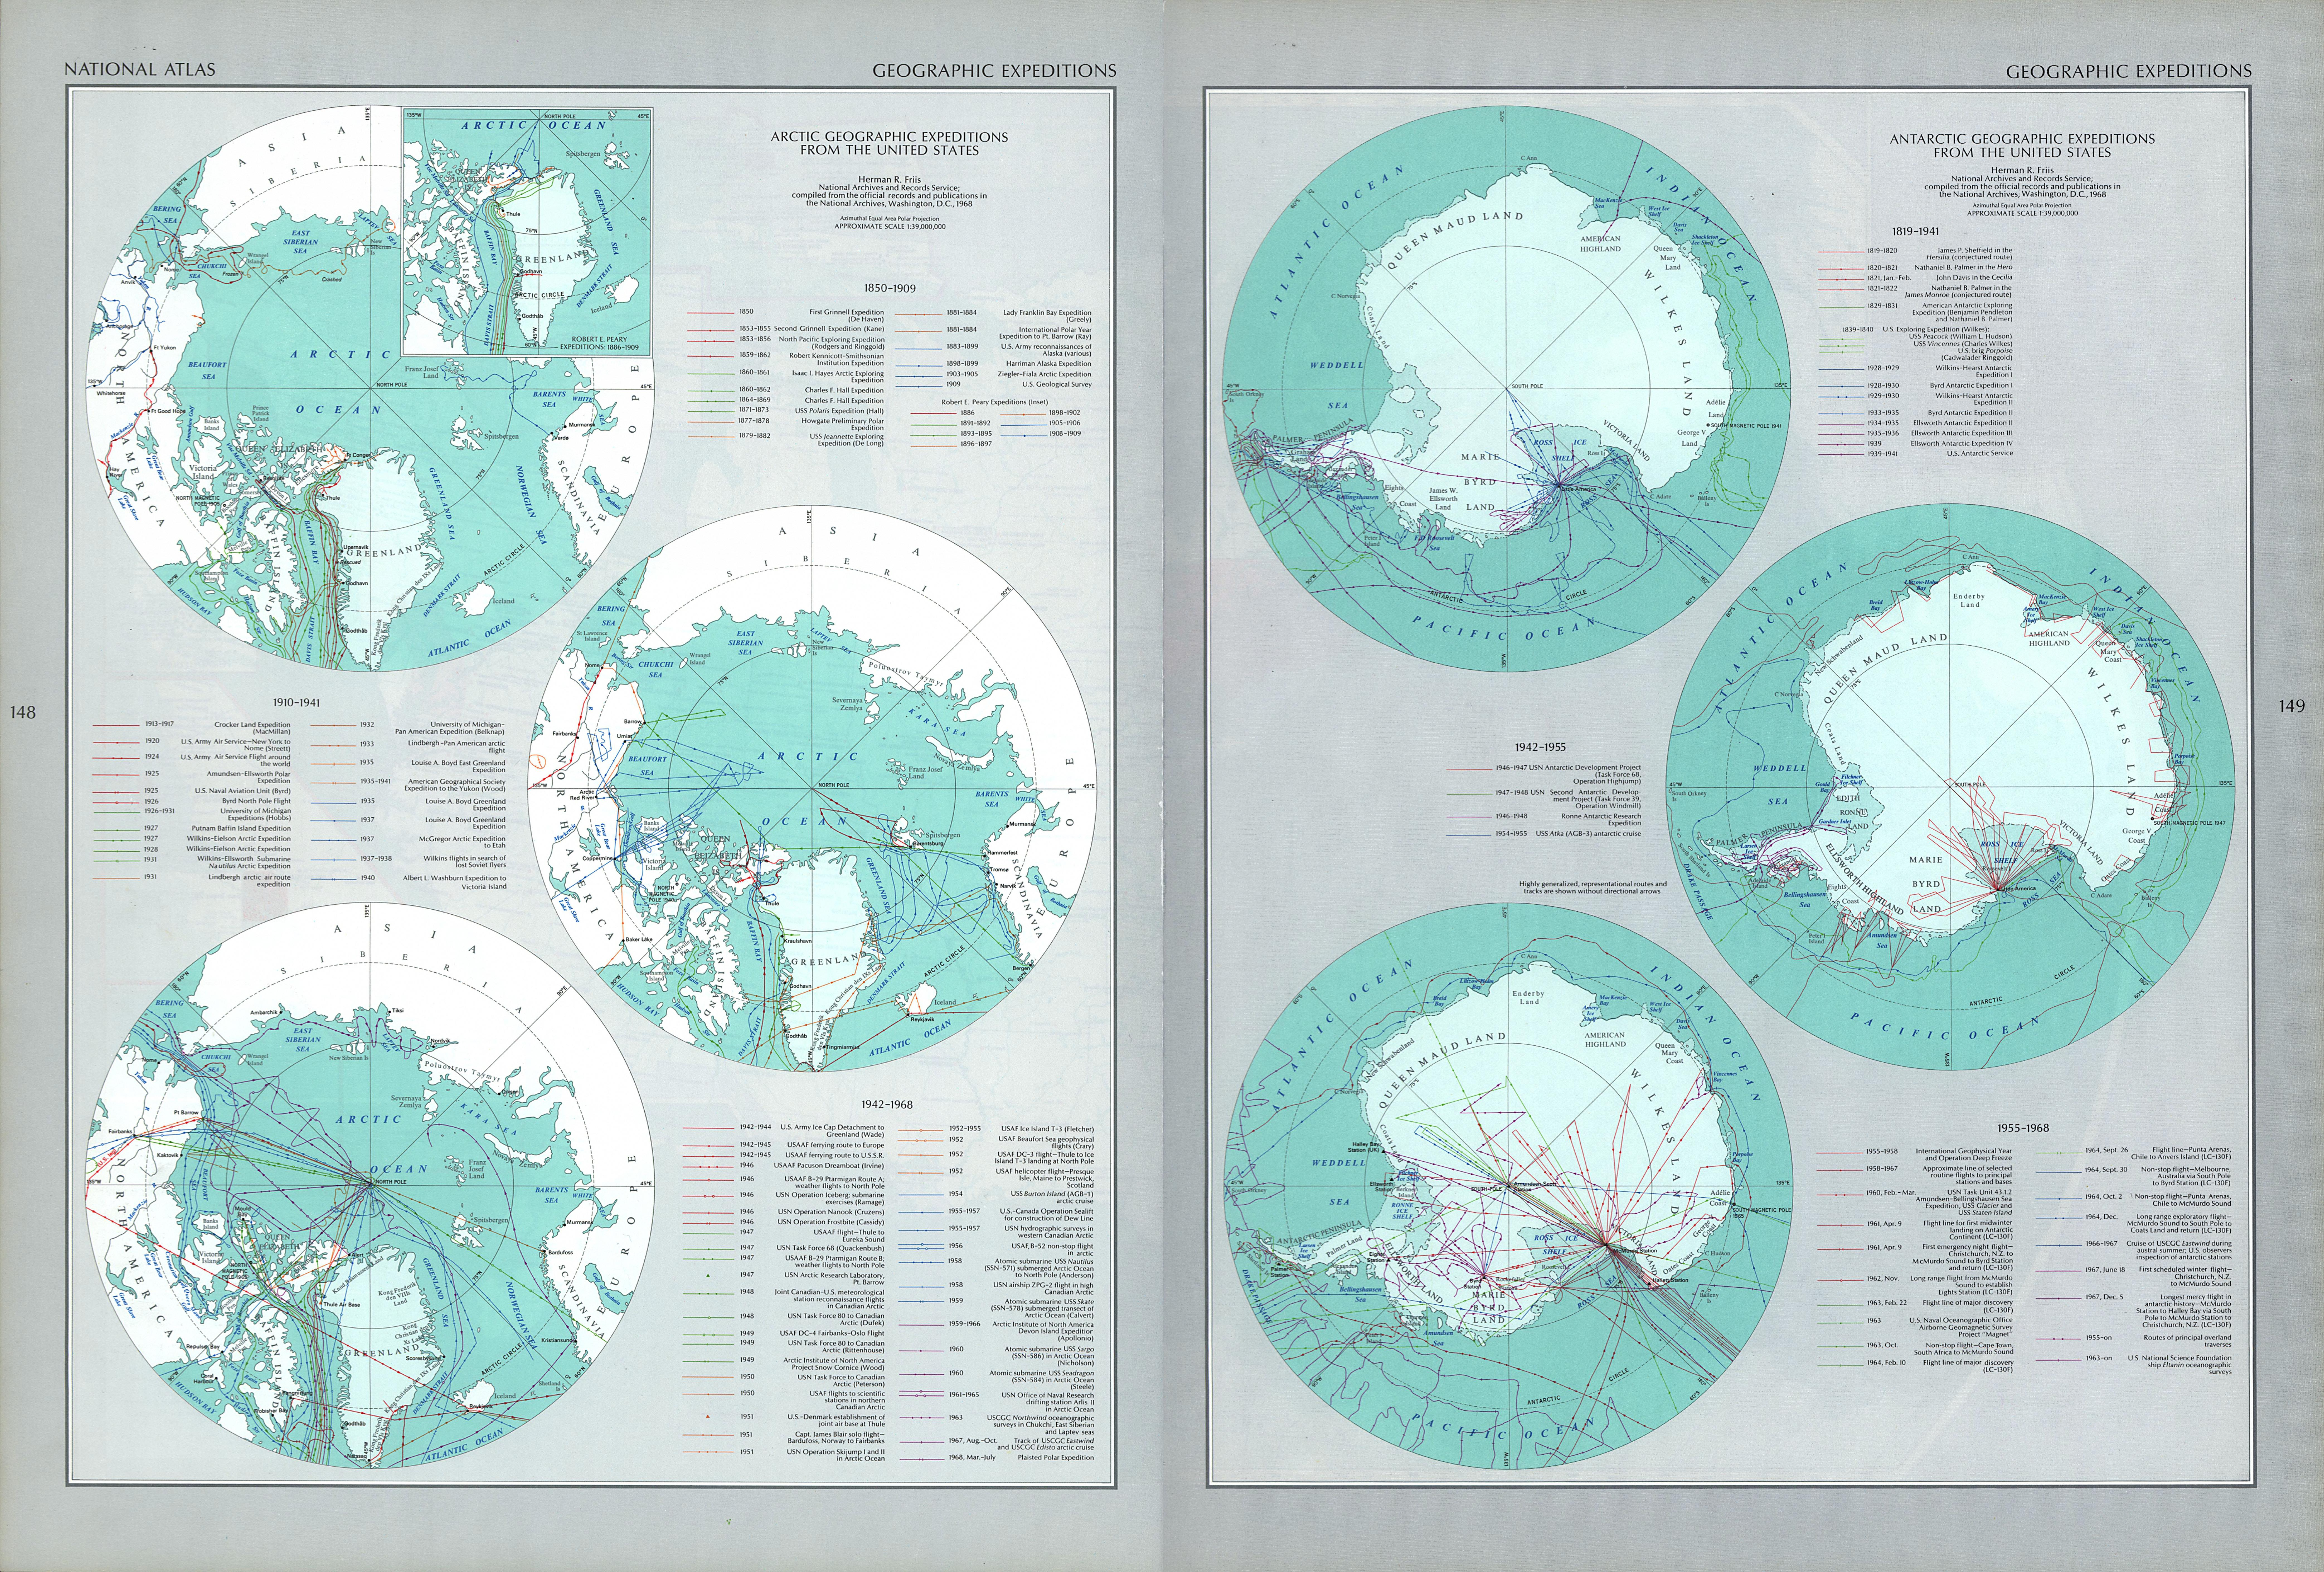 Arctic and Antartic Geographic Expeditions from the United States